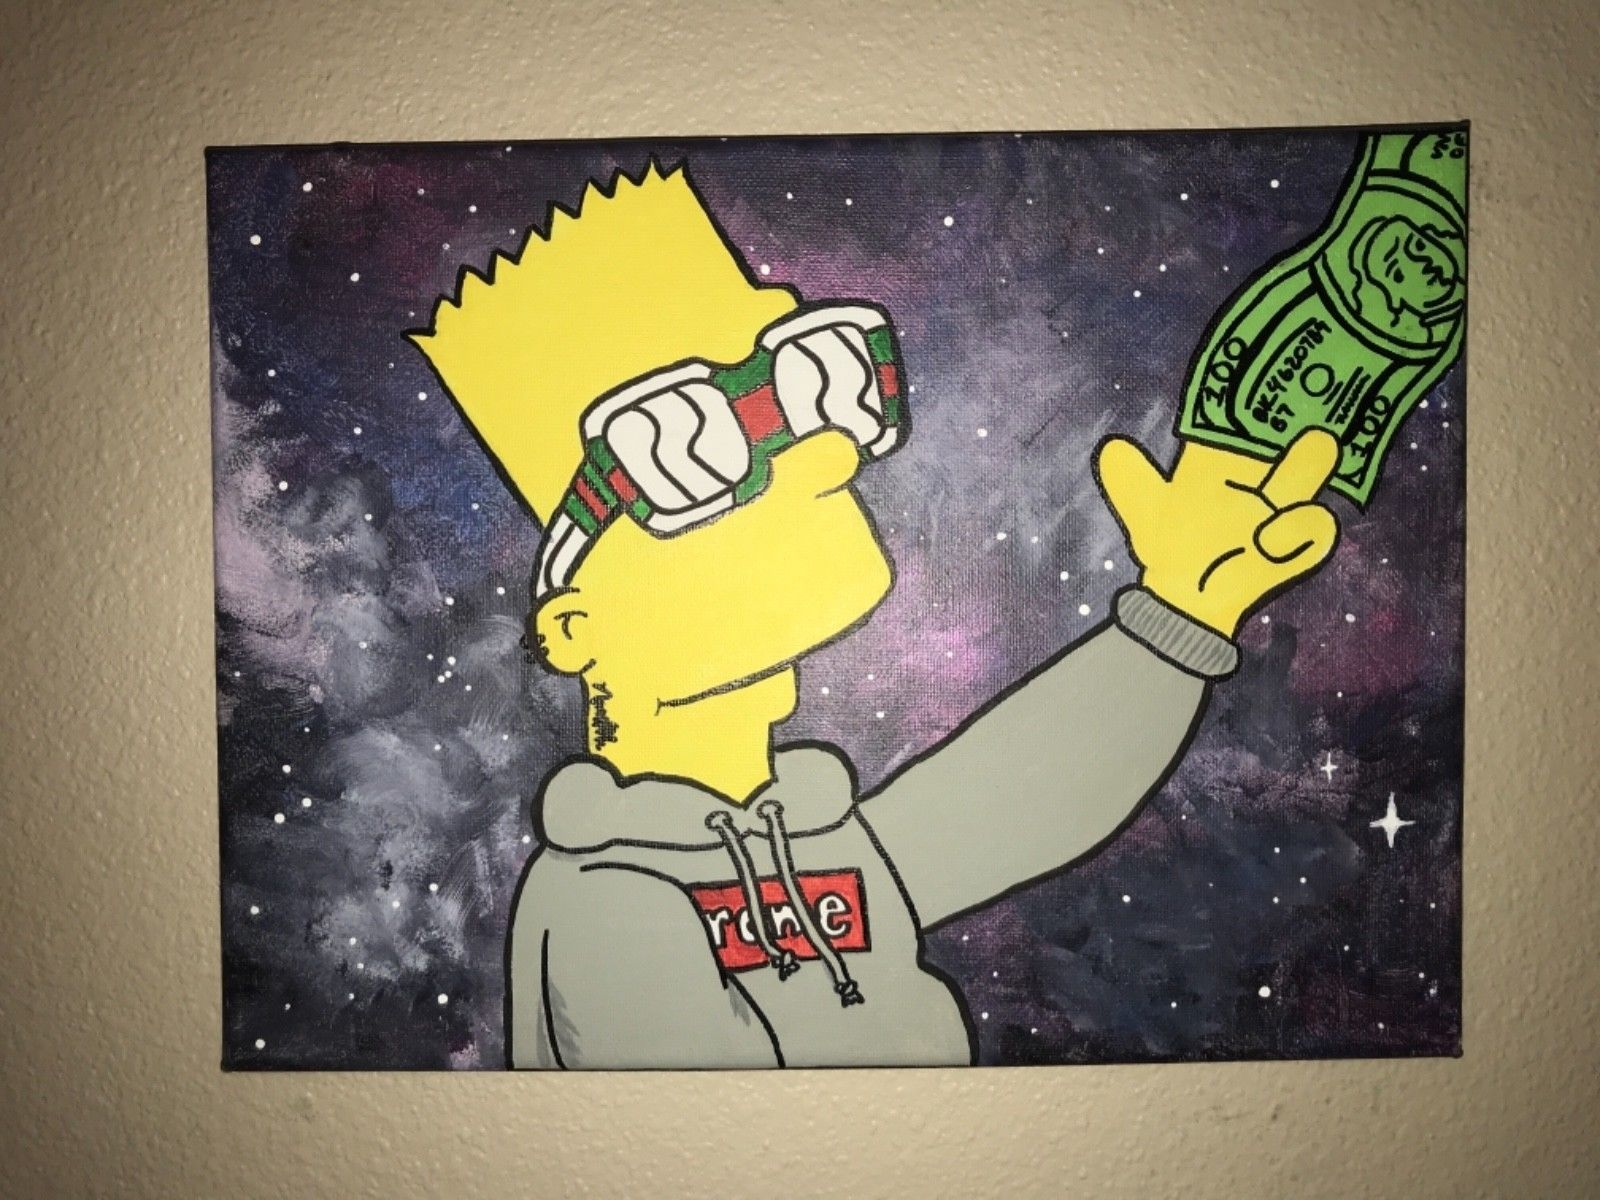 1600x1200 Gangster Bart Simpson Art Painting On Canvas for Sale - Holidays.net